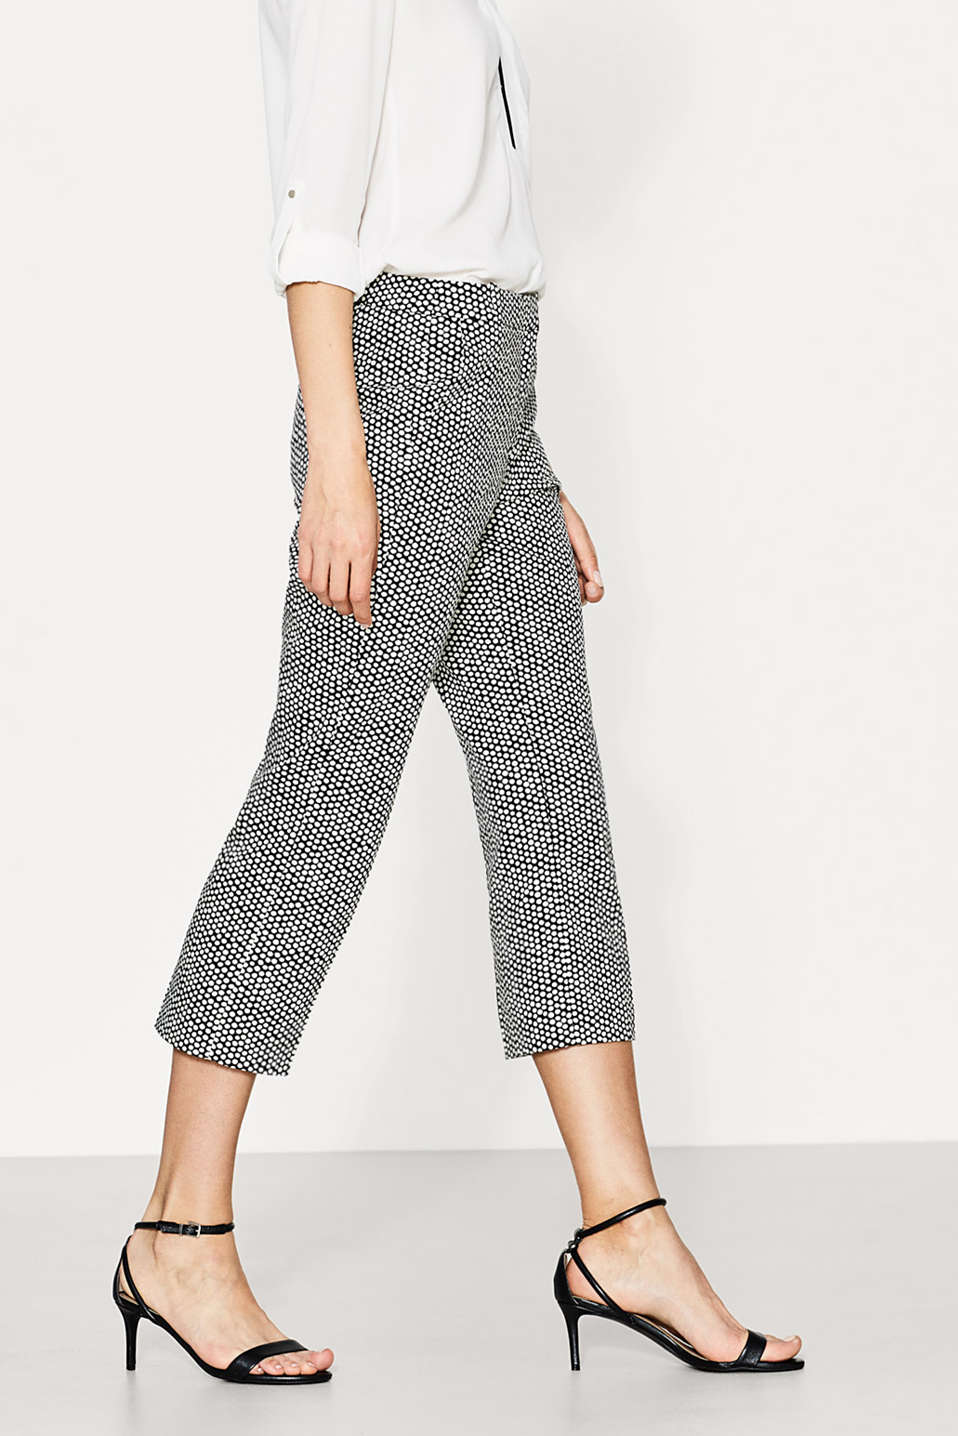 Kick flare printed stretch trousers